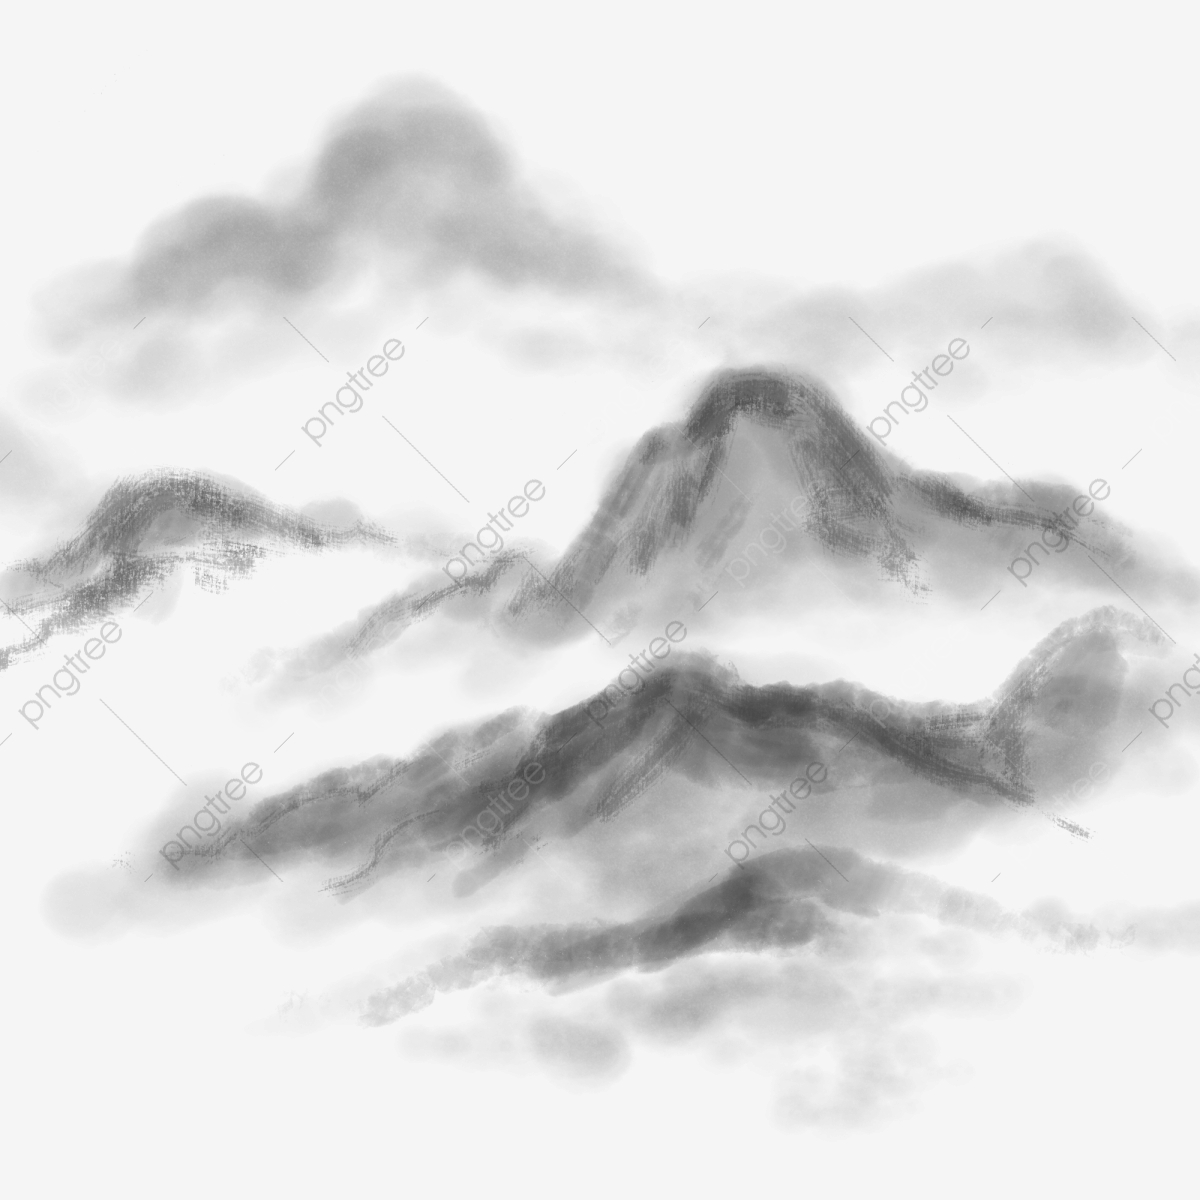 6e8c9ca0b Commercial use resource. Upgrade to Premium plan and get license  authorization.UpgradeNow · Commercial ink chinese painting mountain range  rolling clouds ...